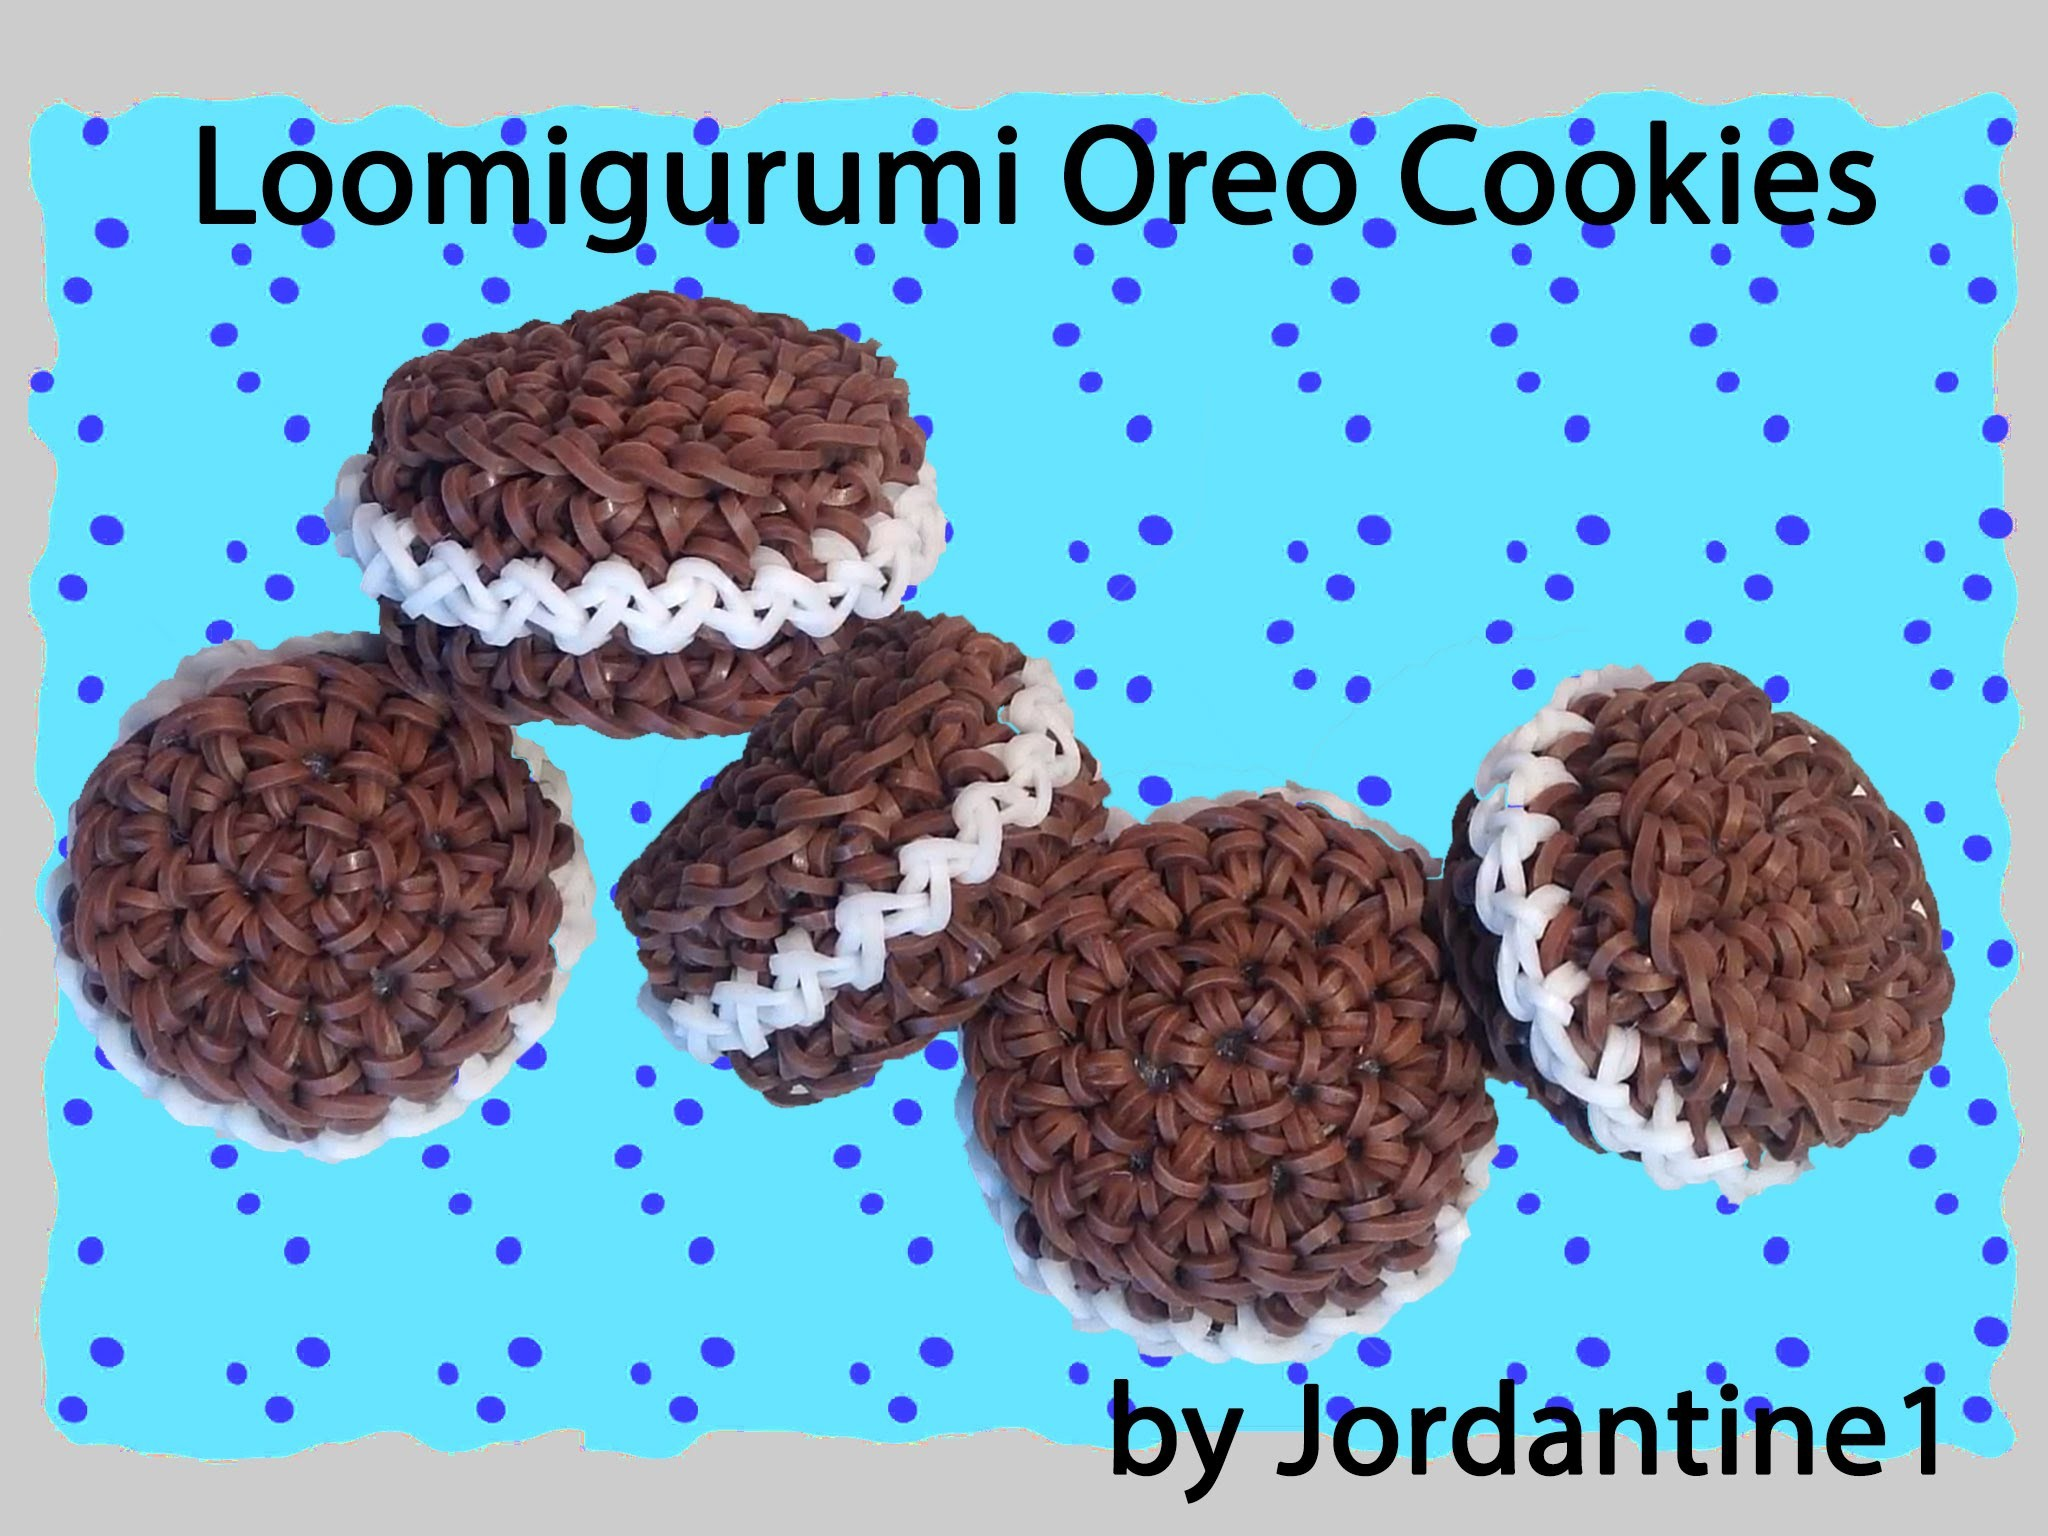 New Loomigurumi. Amigurumi Oreo Cookie - Rubber Band Crochet - Rainbow Loom - Hook Only